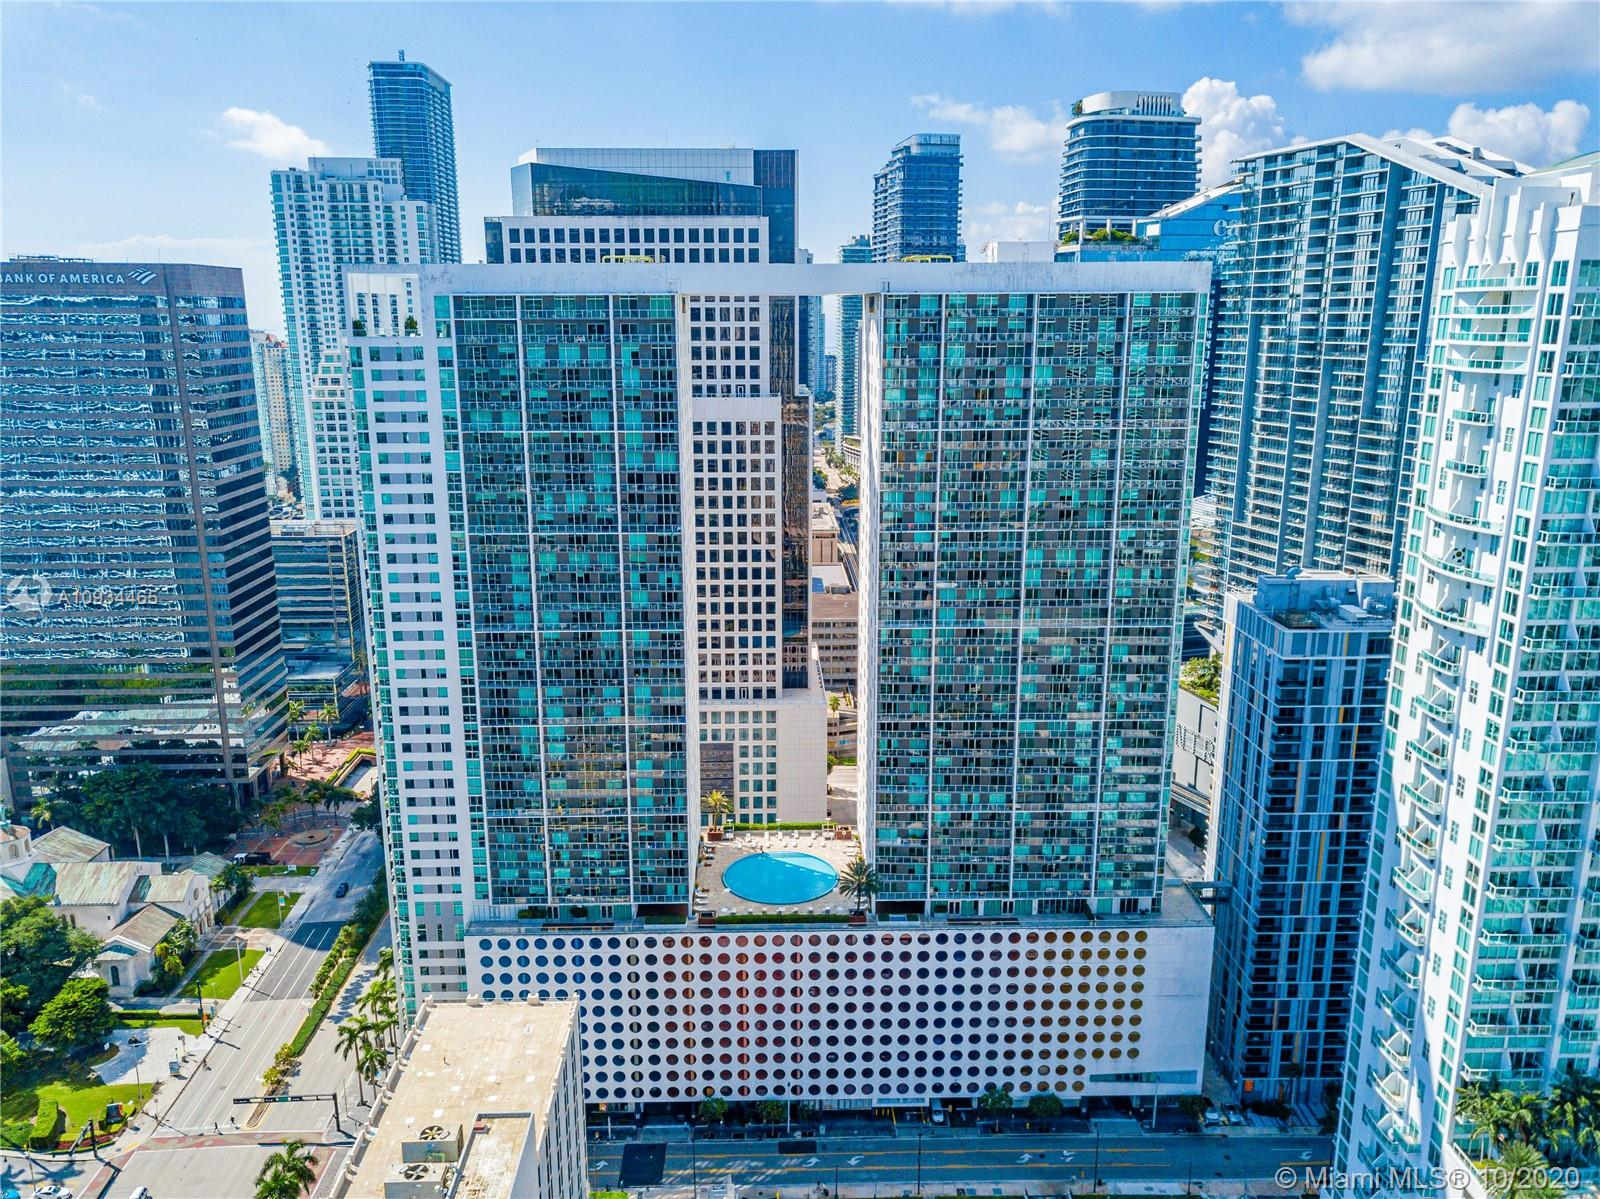 500 Brickell West Tower #2106 - 500 Brickell Ave #2106, Miami, FL 33131